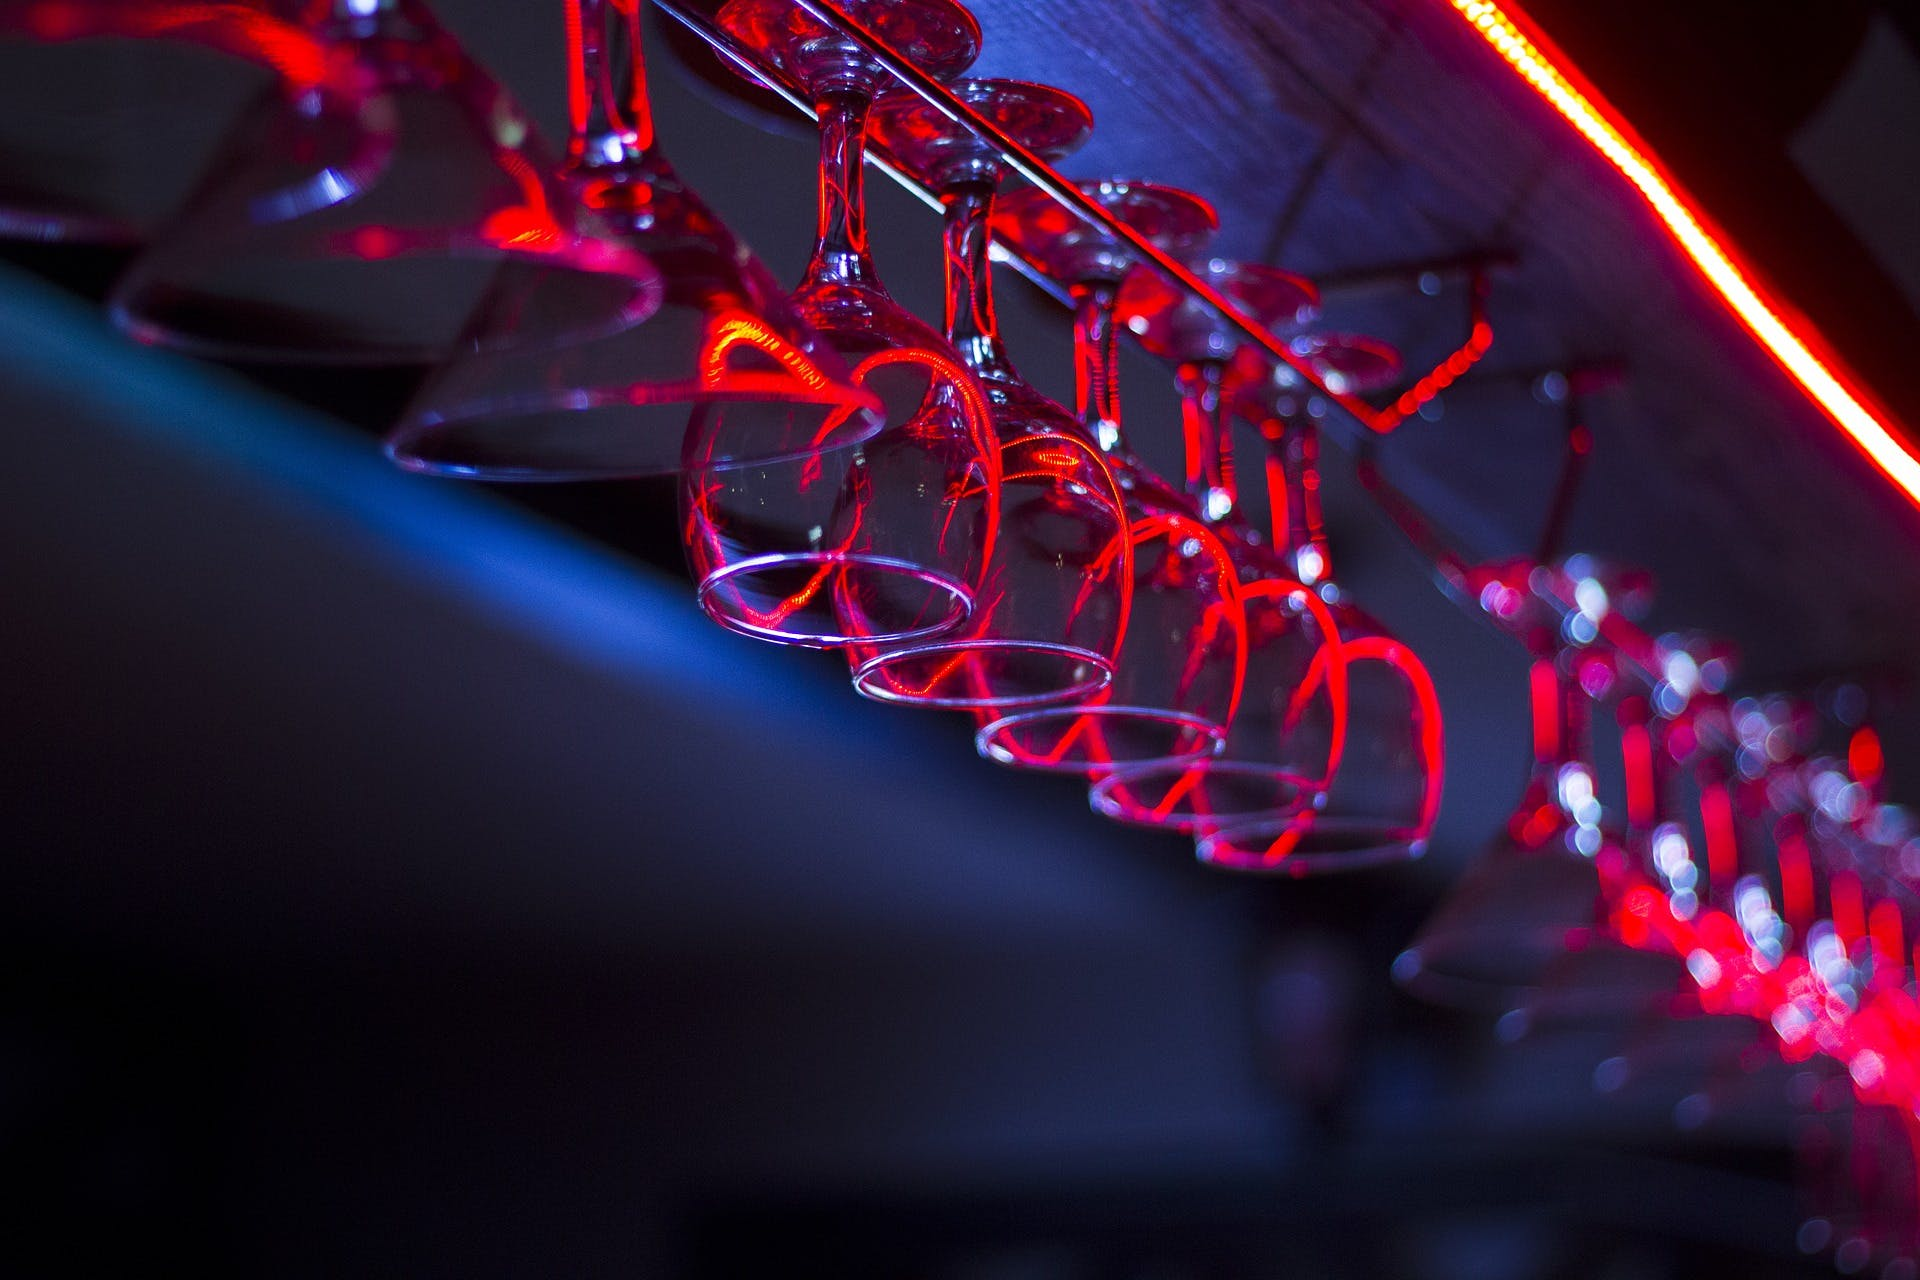 Wine glasses hanging overhead at a local bar